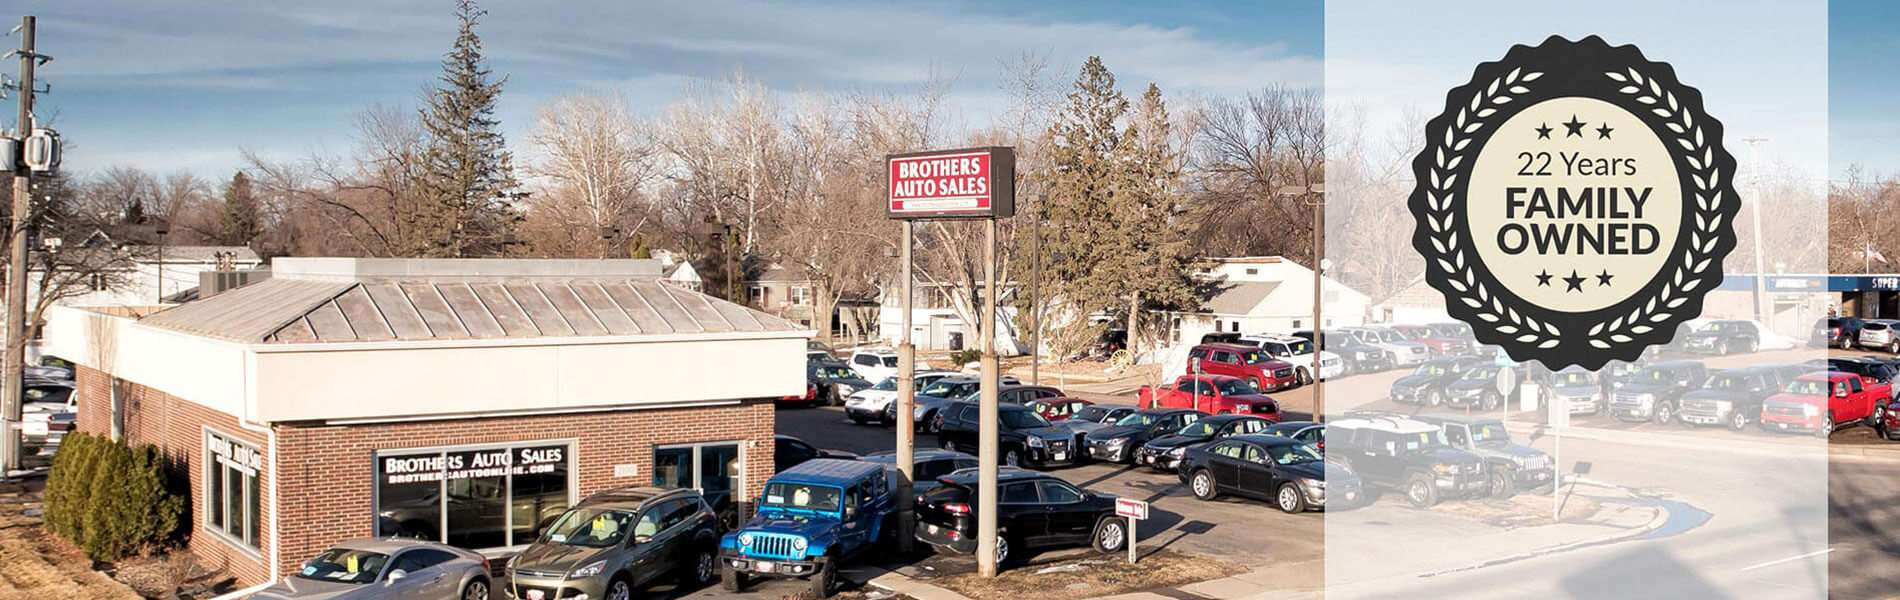 Used Cars Sioux Falls Sd >> Brothers Auto Sales | Sioux Falls, SD | Used Car Dealer